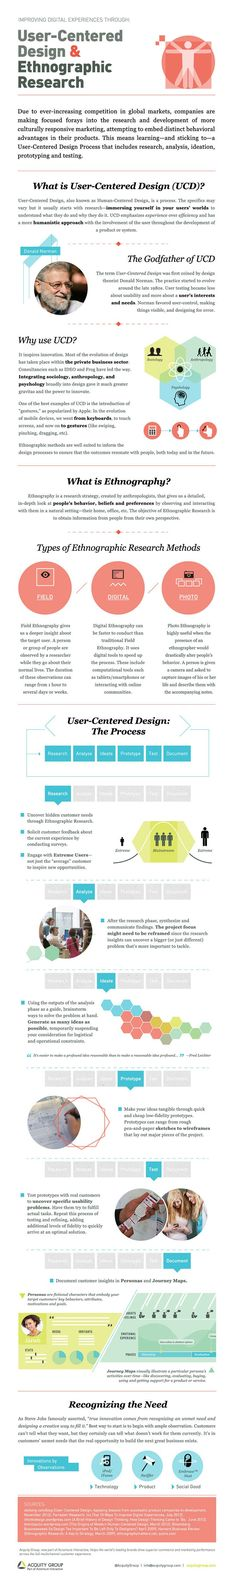 User-Centered Design and Ethnographic Research #infographic #Marketing #ContentMarketing